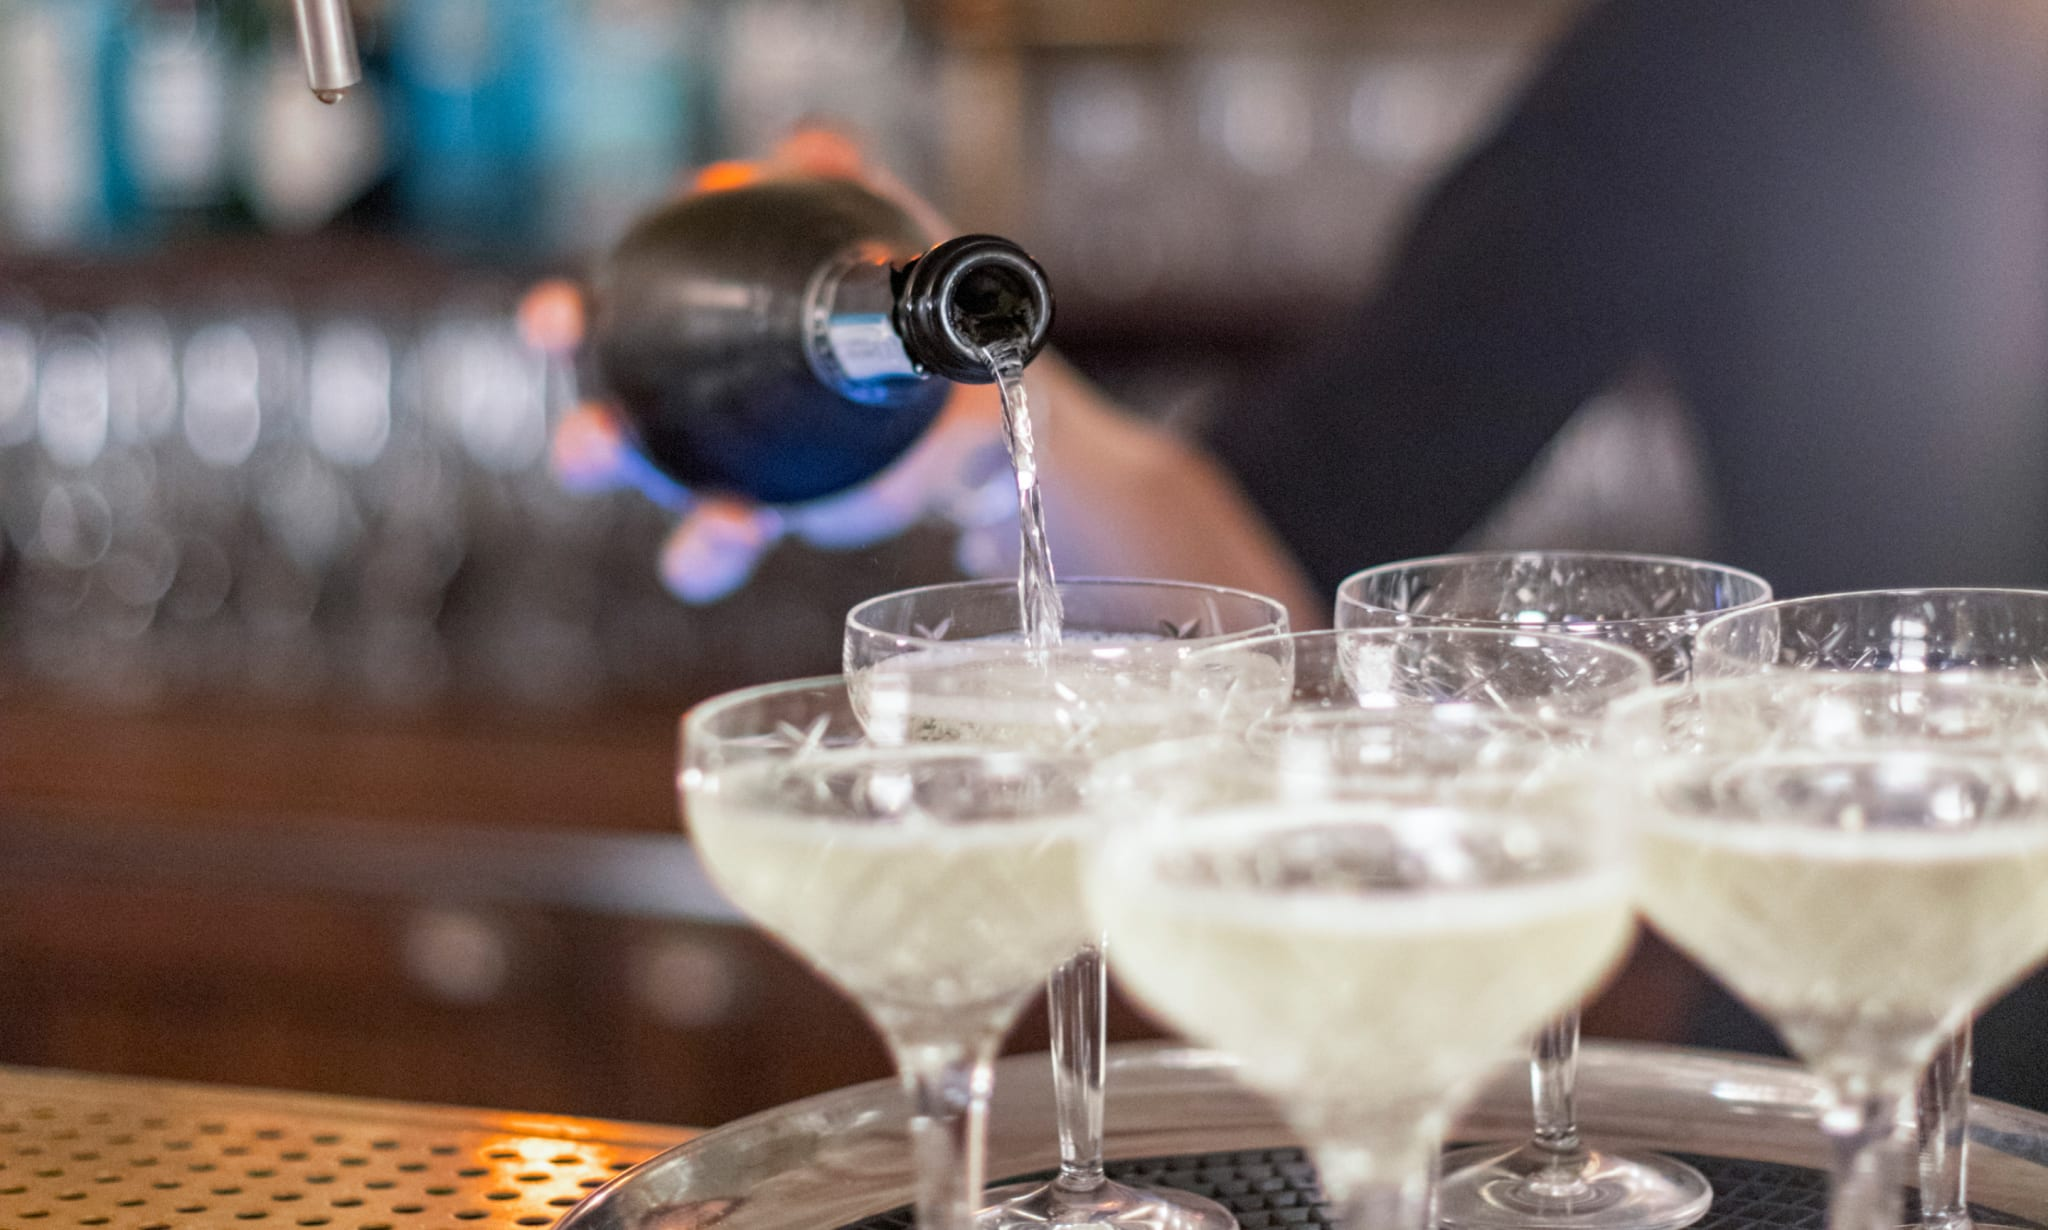 A bottle of champagne being poured into glasses on a bar.